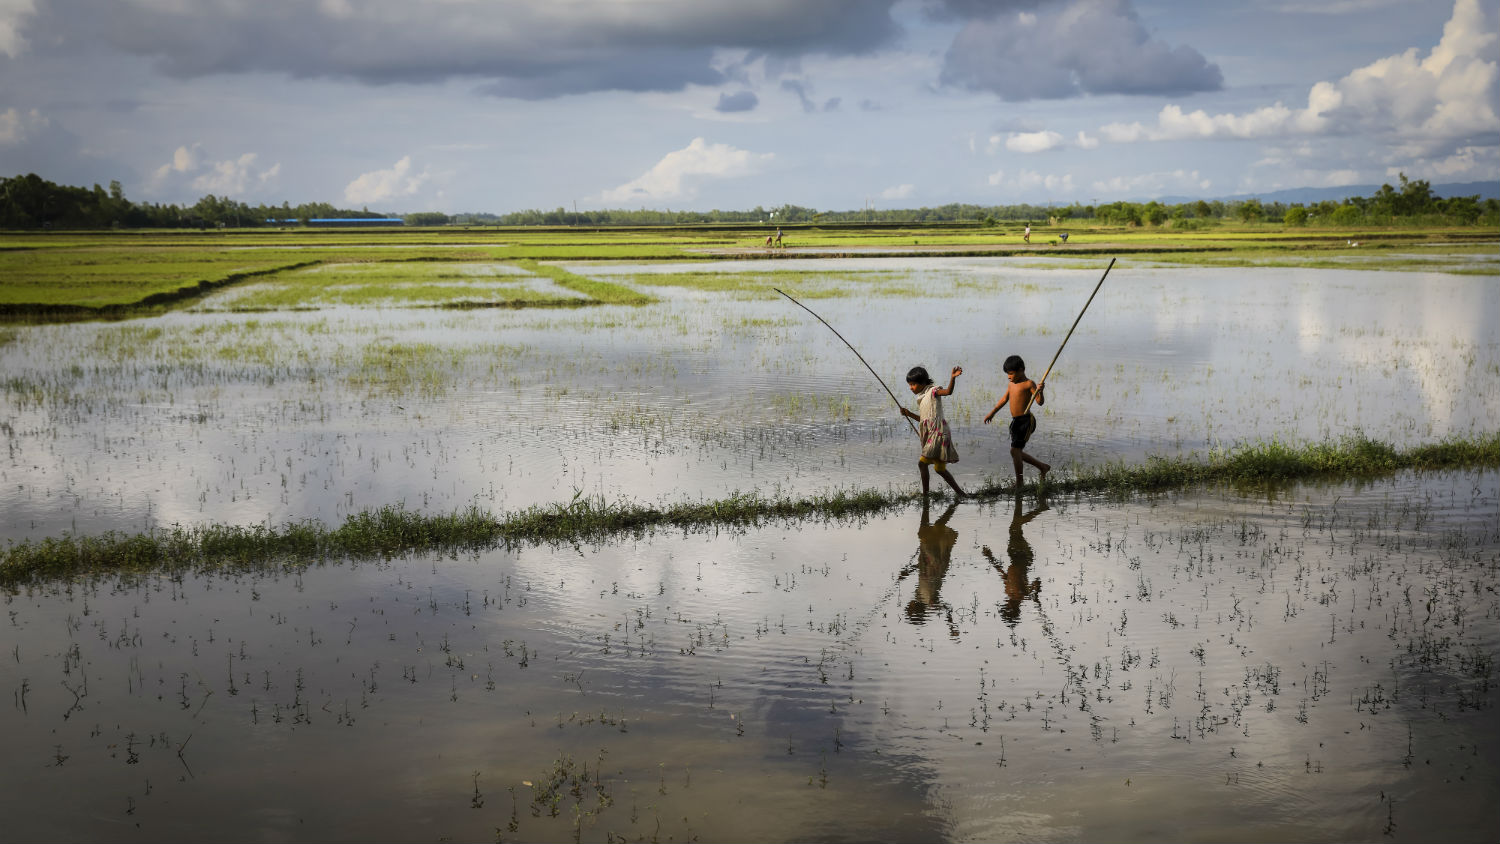 Reflections, brother and sister, Reshma (8) and Ridoy (9) are fishing on floodwaters in Cox's Bazaar, Bangladesh after a monsoon.